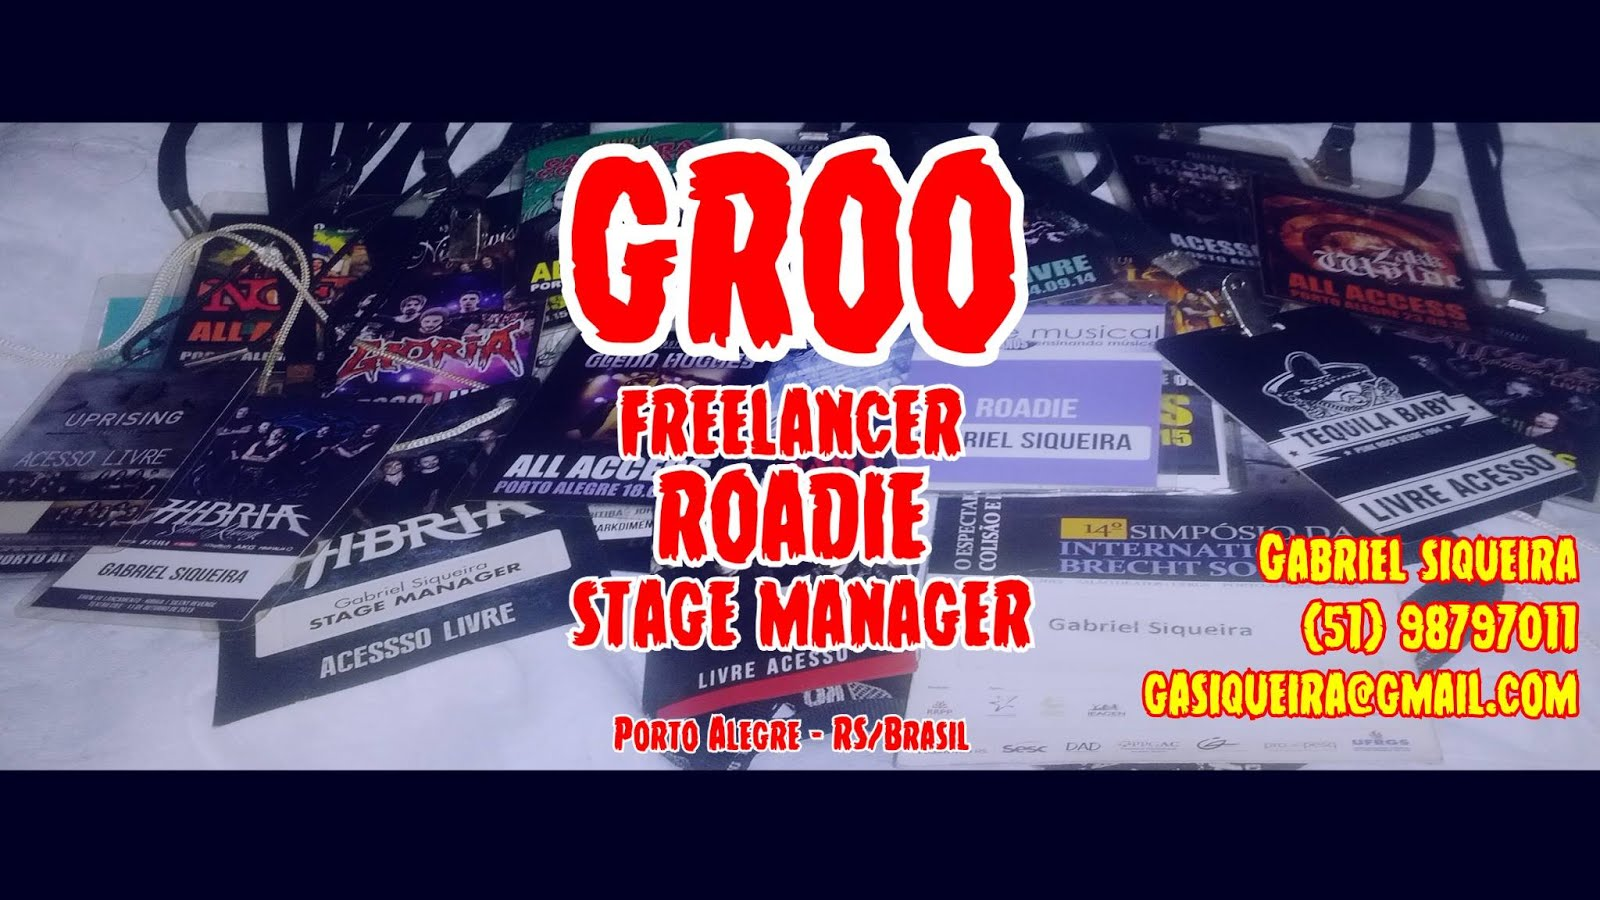 Groo: Free-lancer Musician / Roadie / Stage Manager